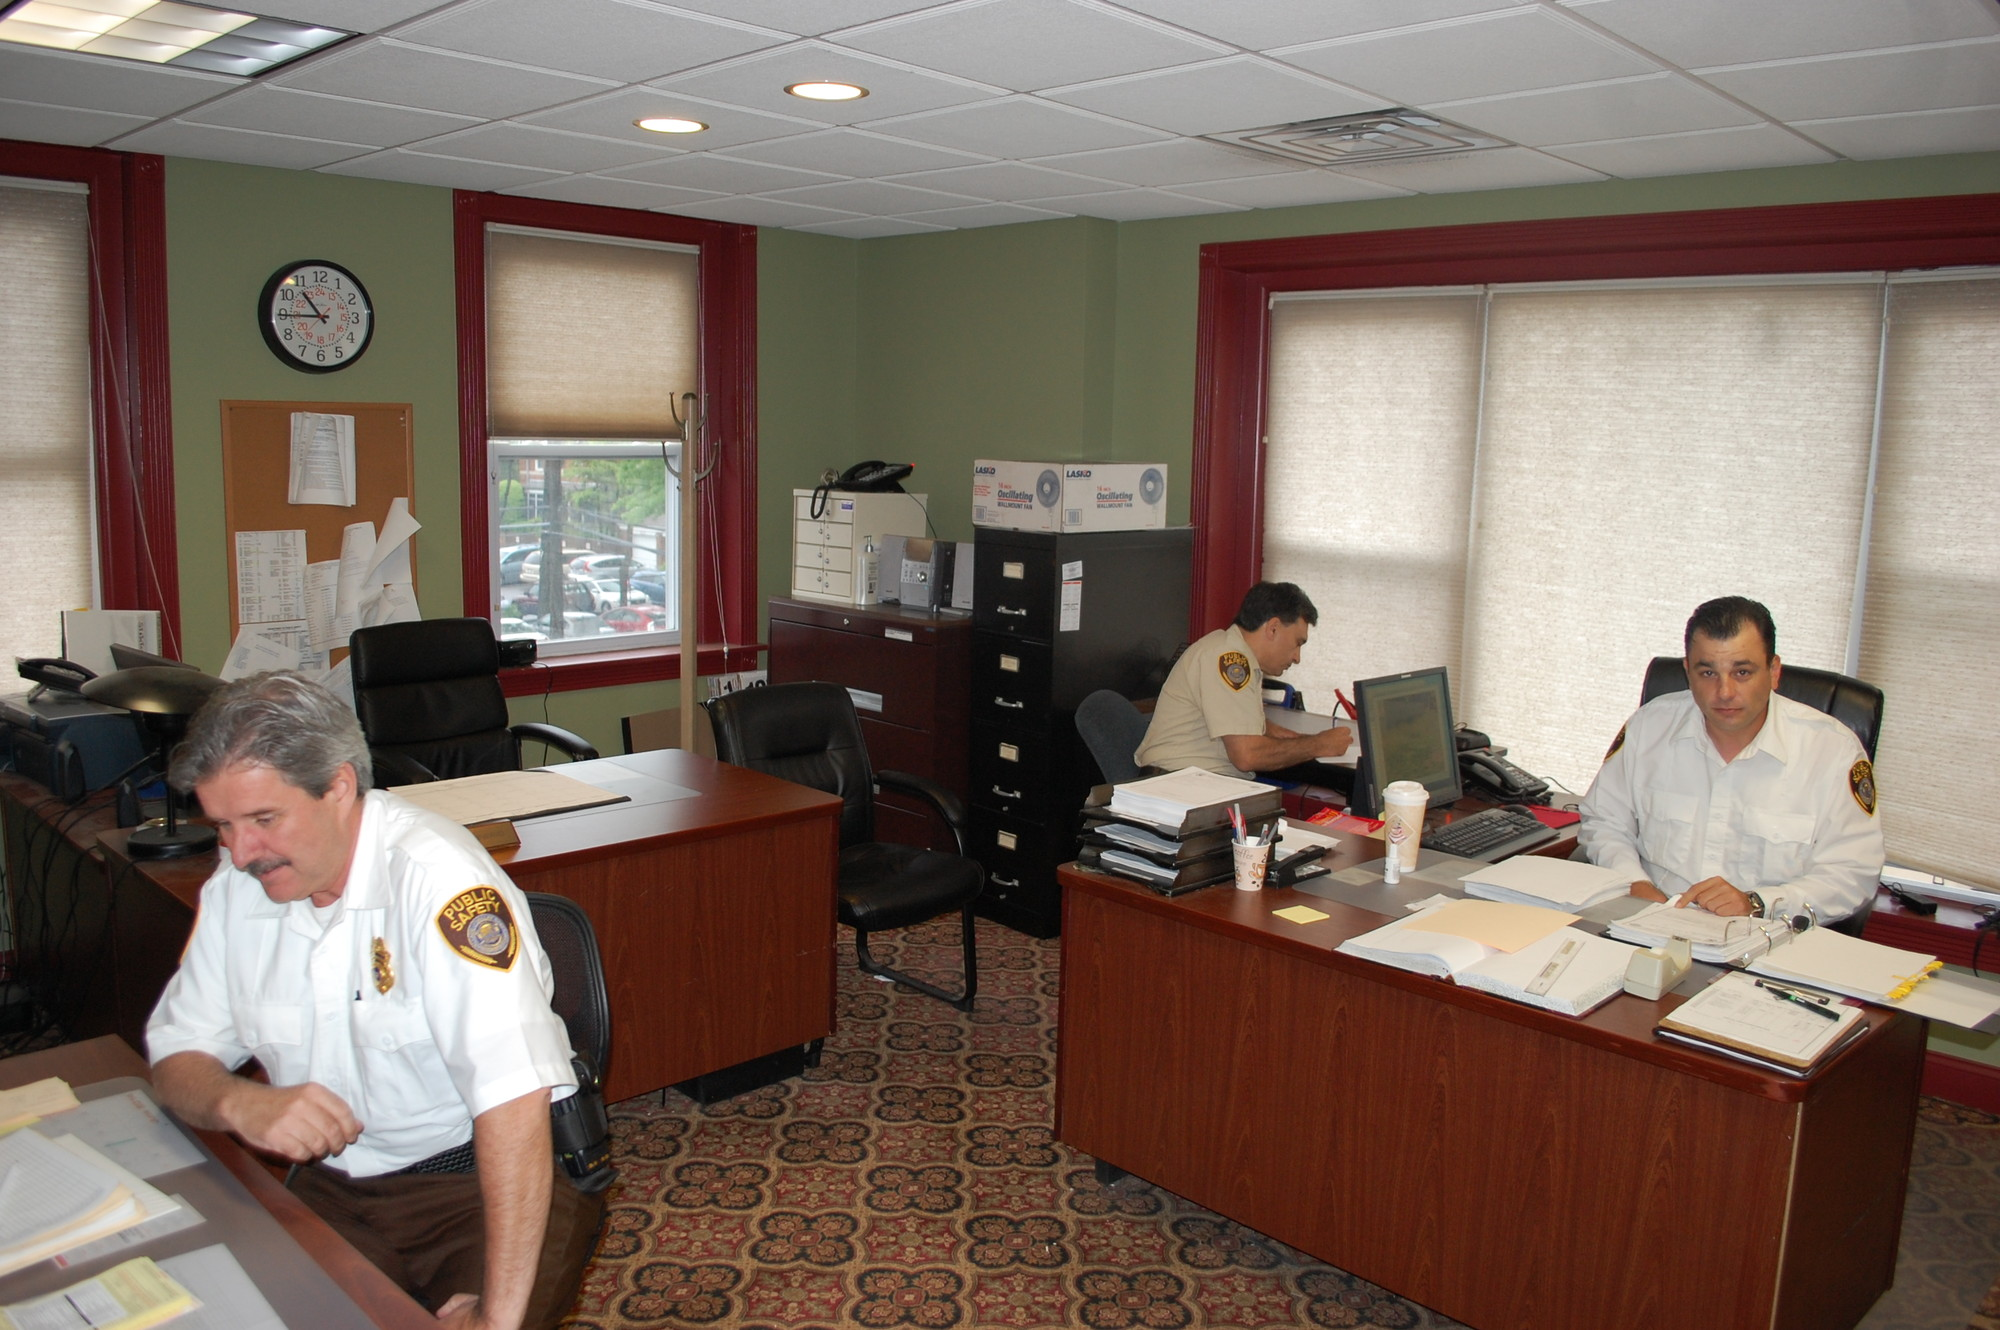 Public Safety officers in their new space at 195 Rockaway Ave.